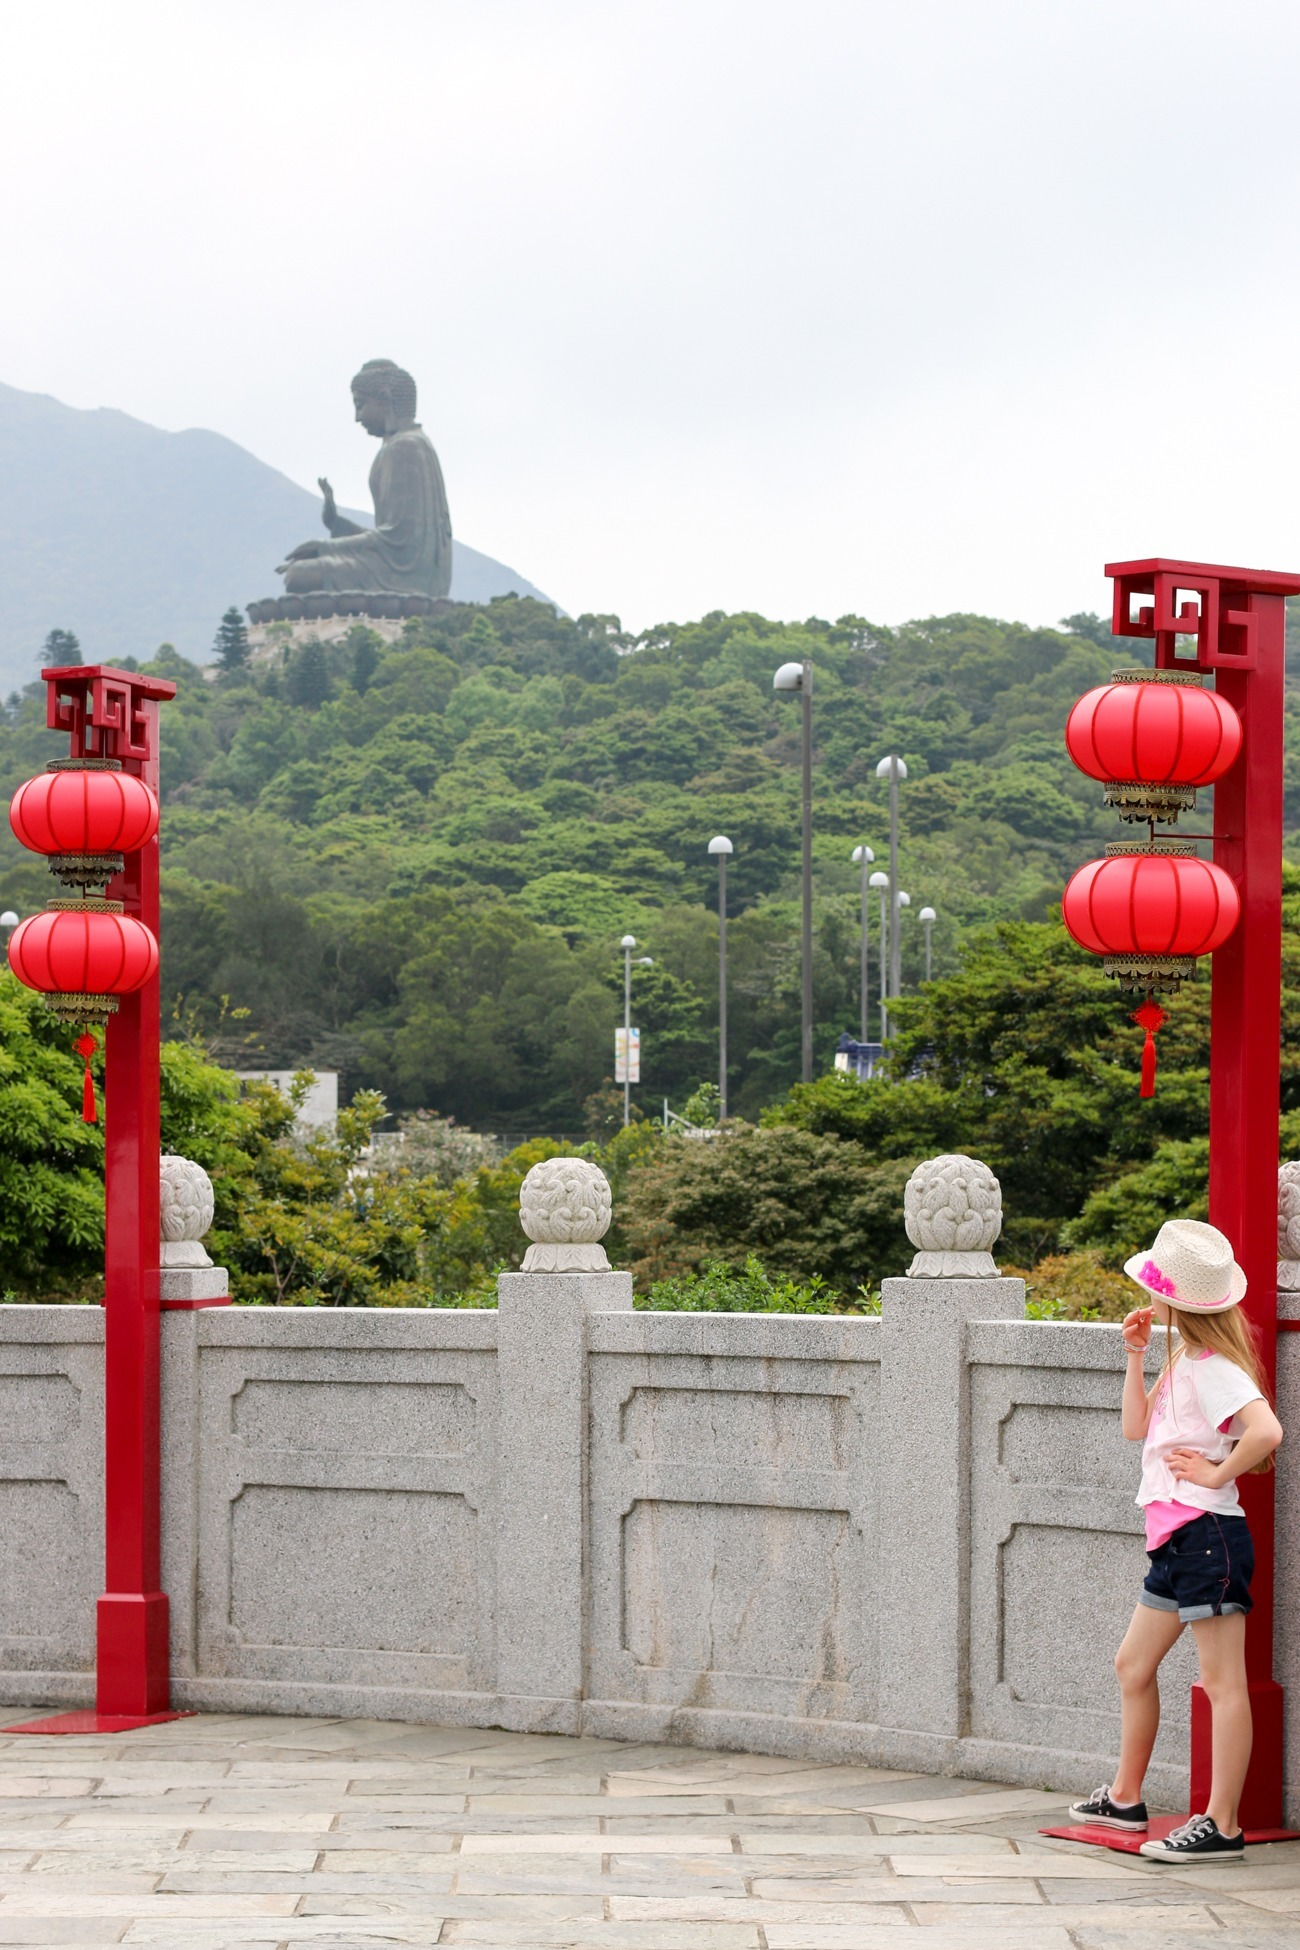 The view of the Big Buddha from Ngong Ping Village on Lantau Island, Hong Kong